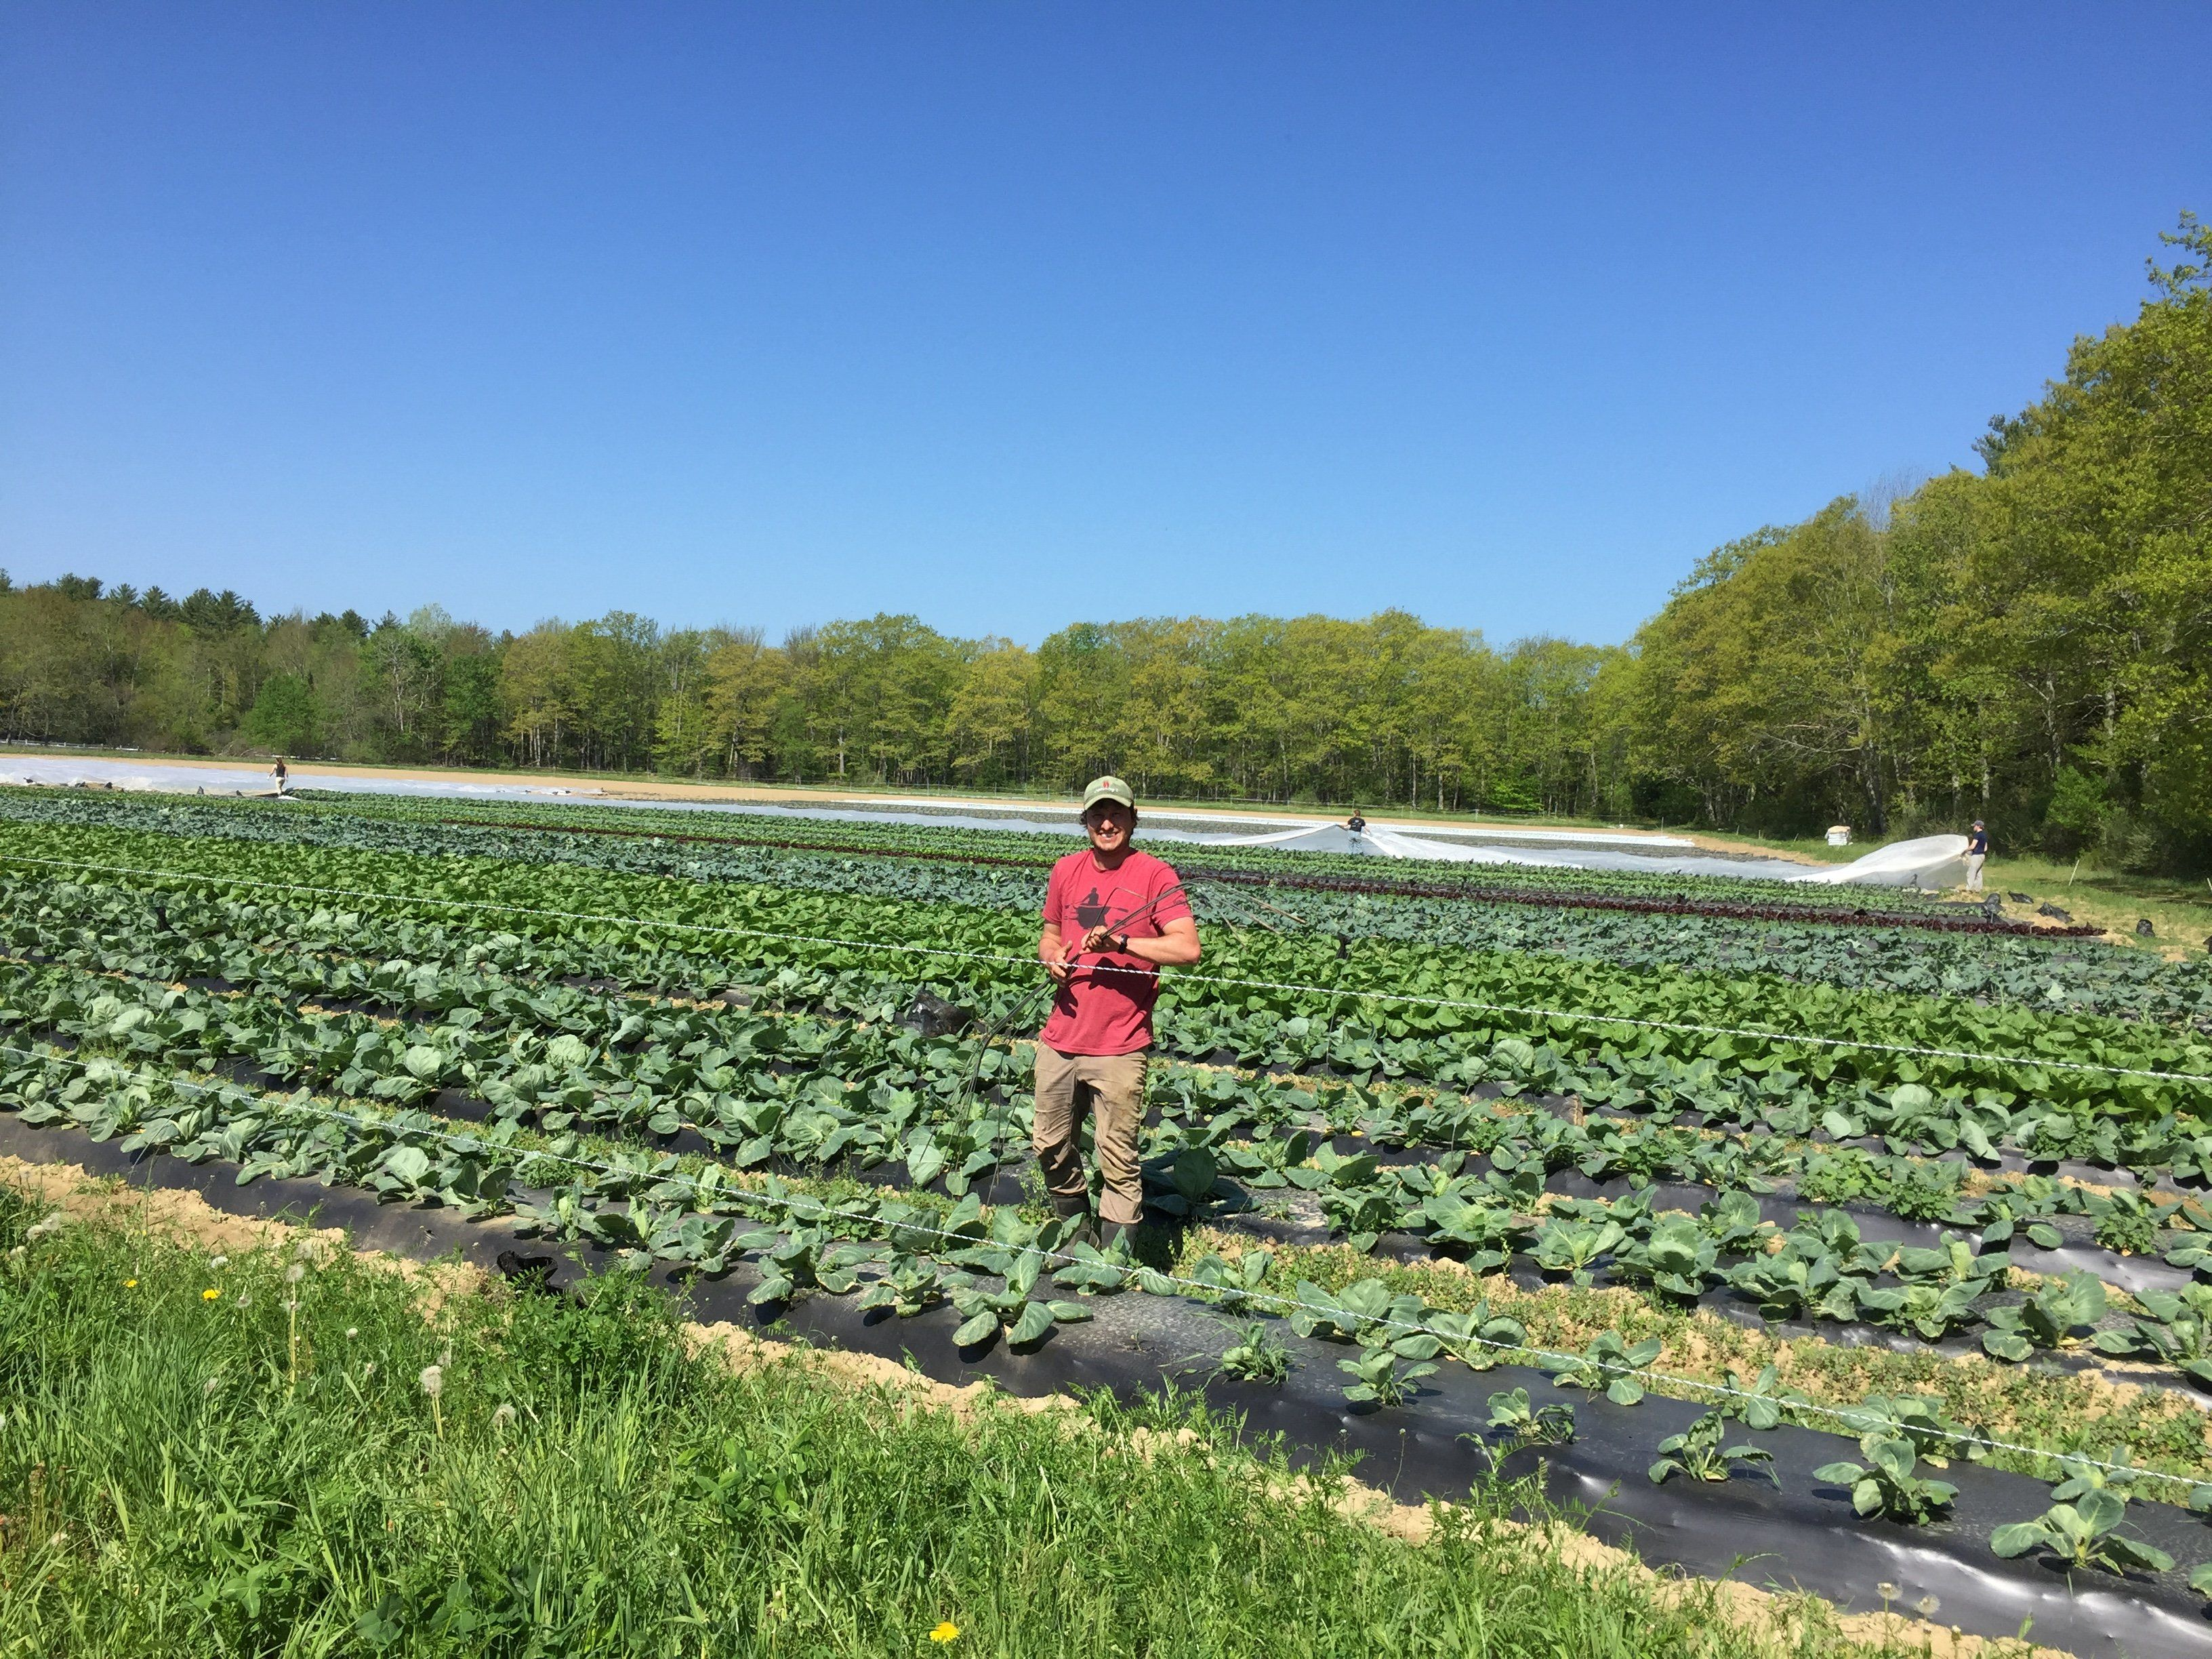 Next Happening: Shares Begin!  Farm and Share update for June 10th/11th Delivery